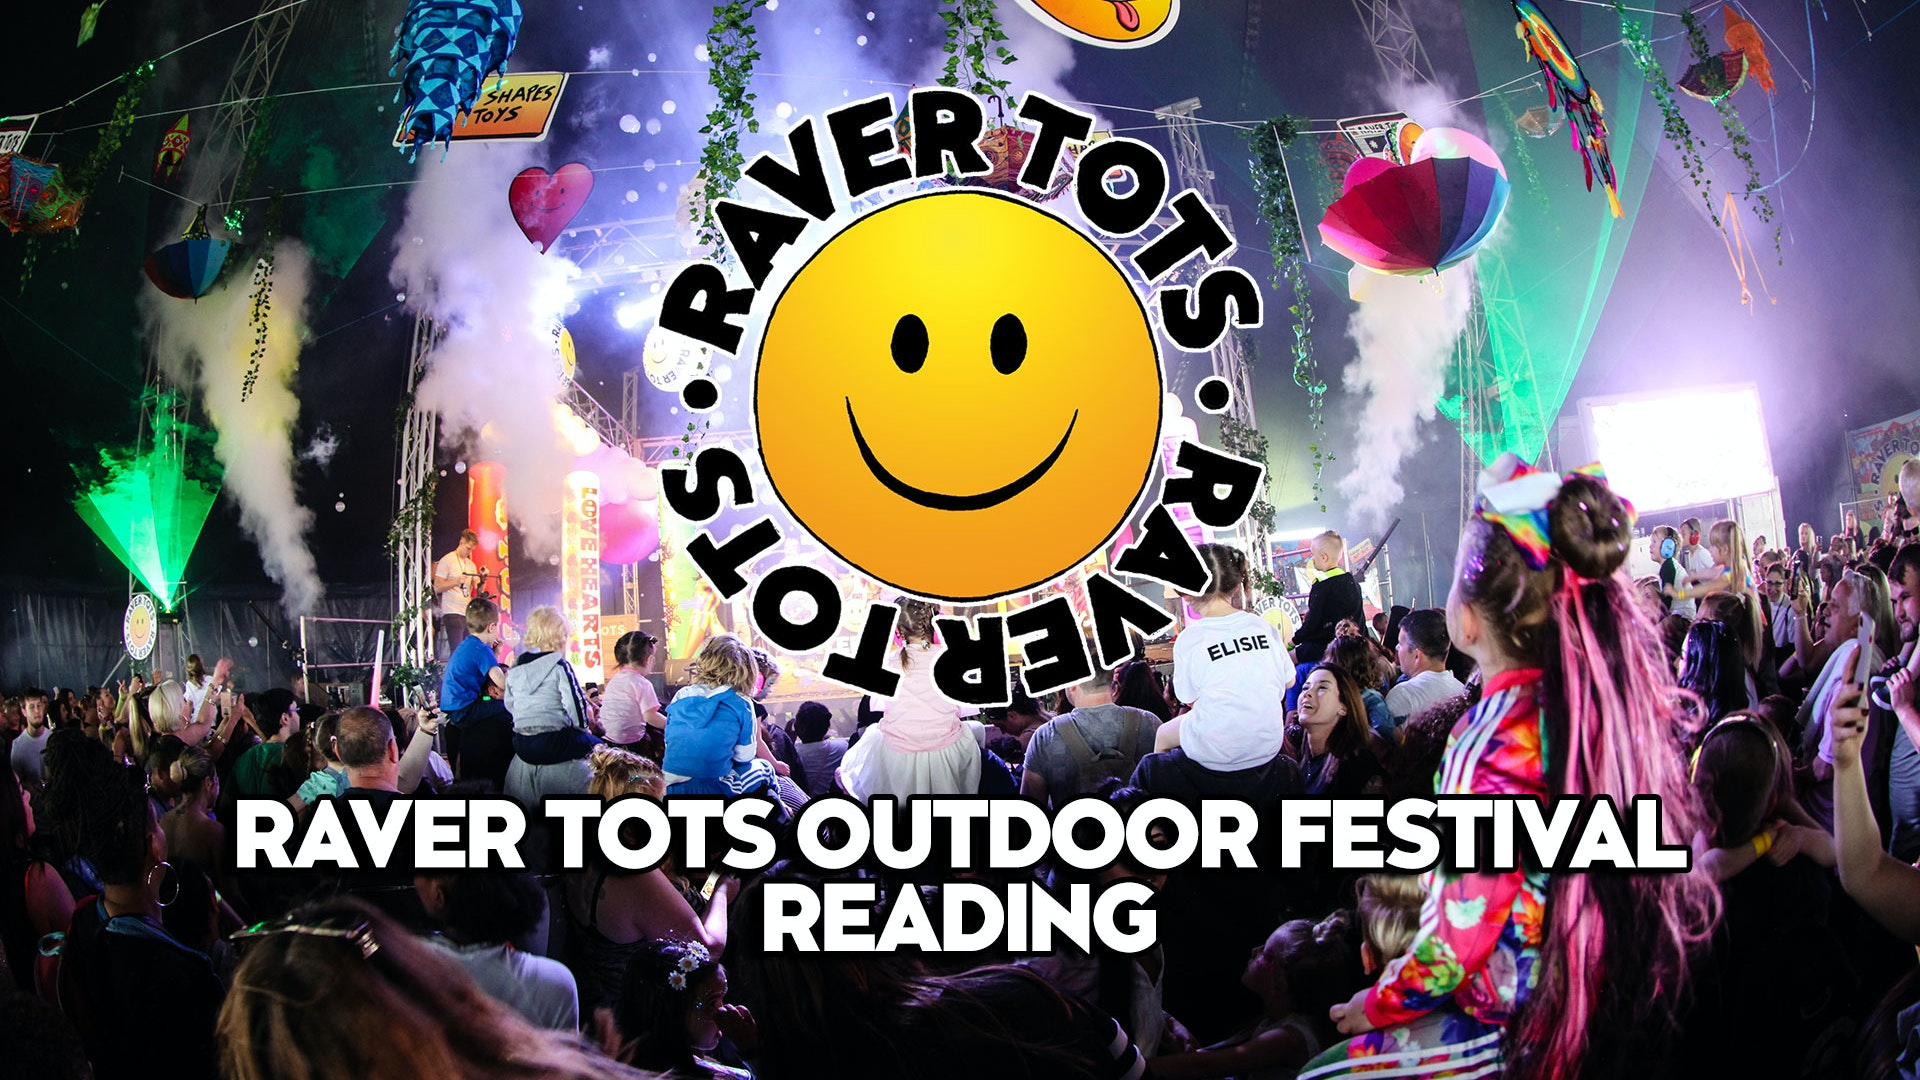 Raver Tots Outdoor Festival Reading 2021